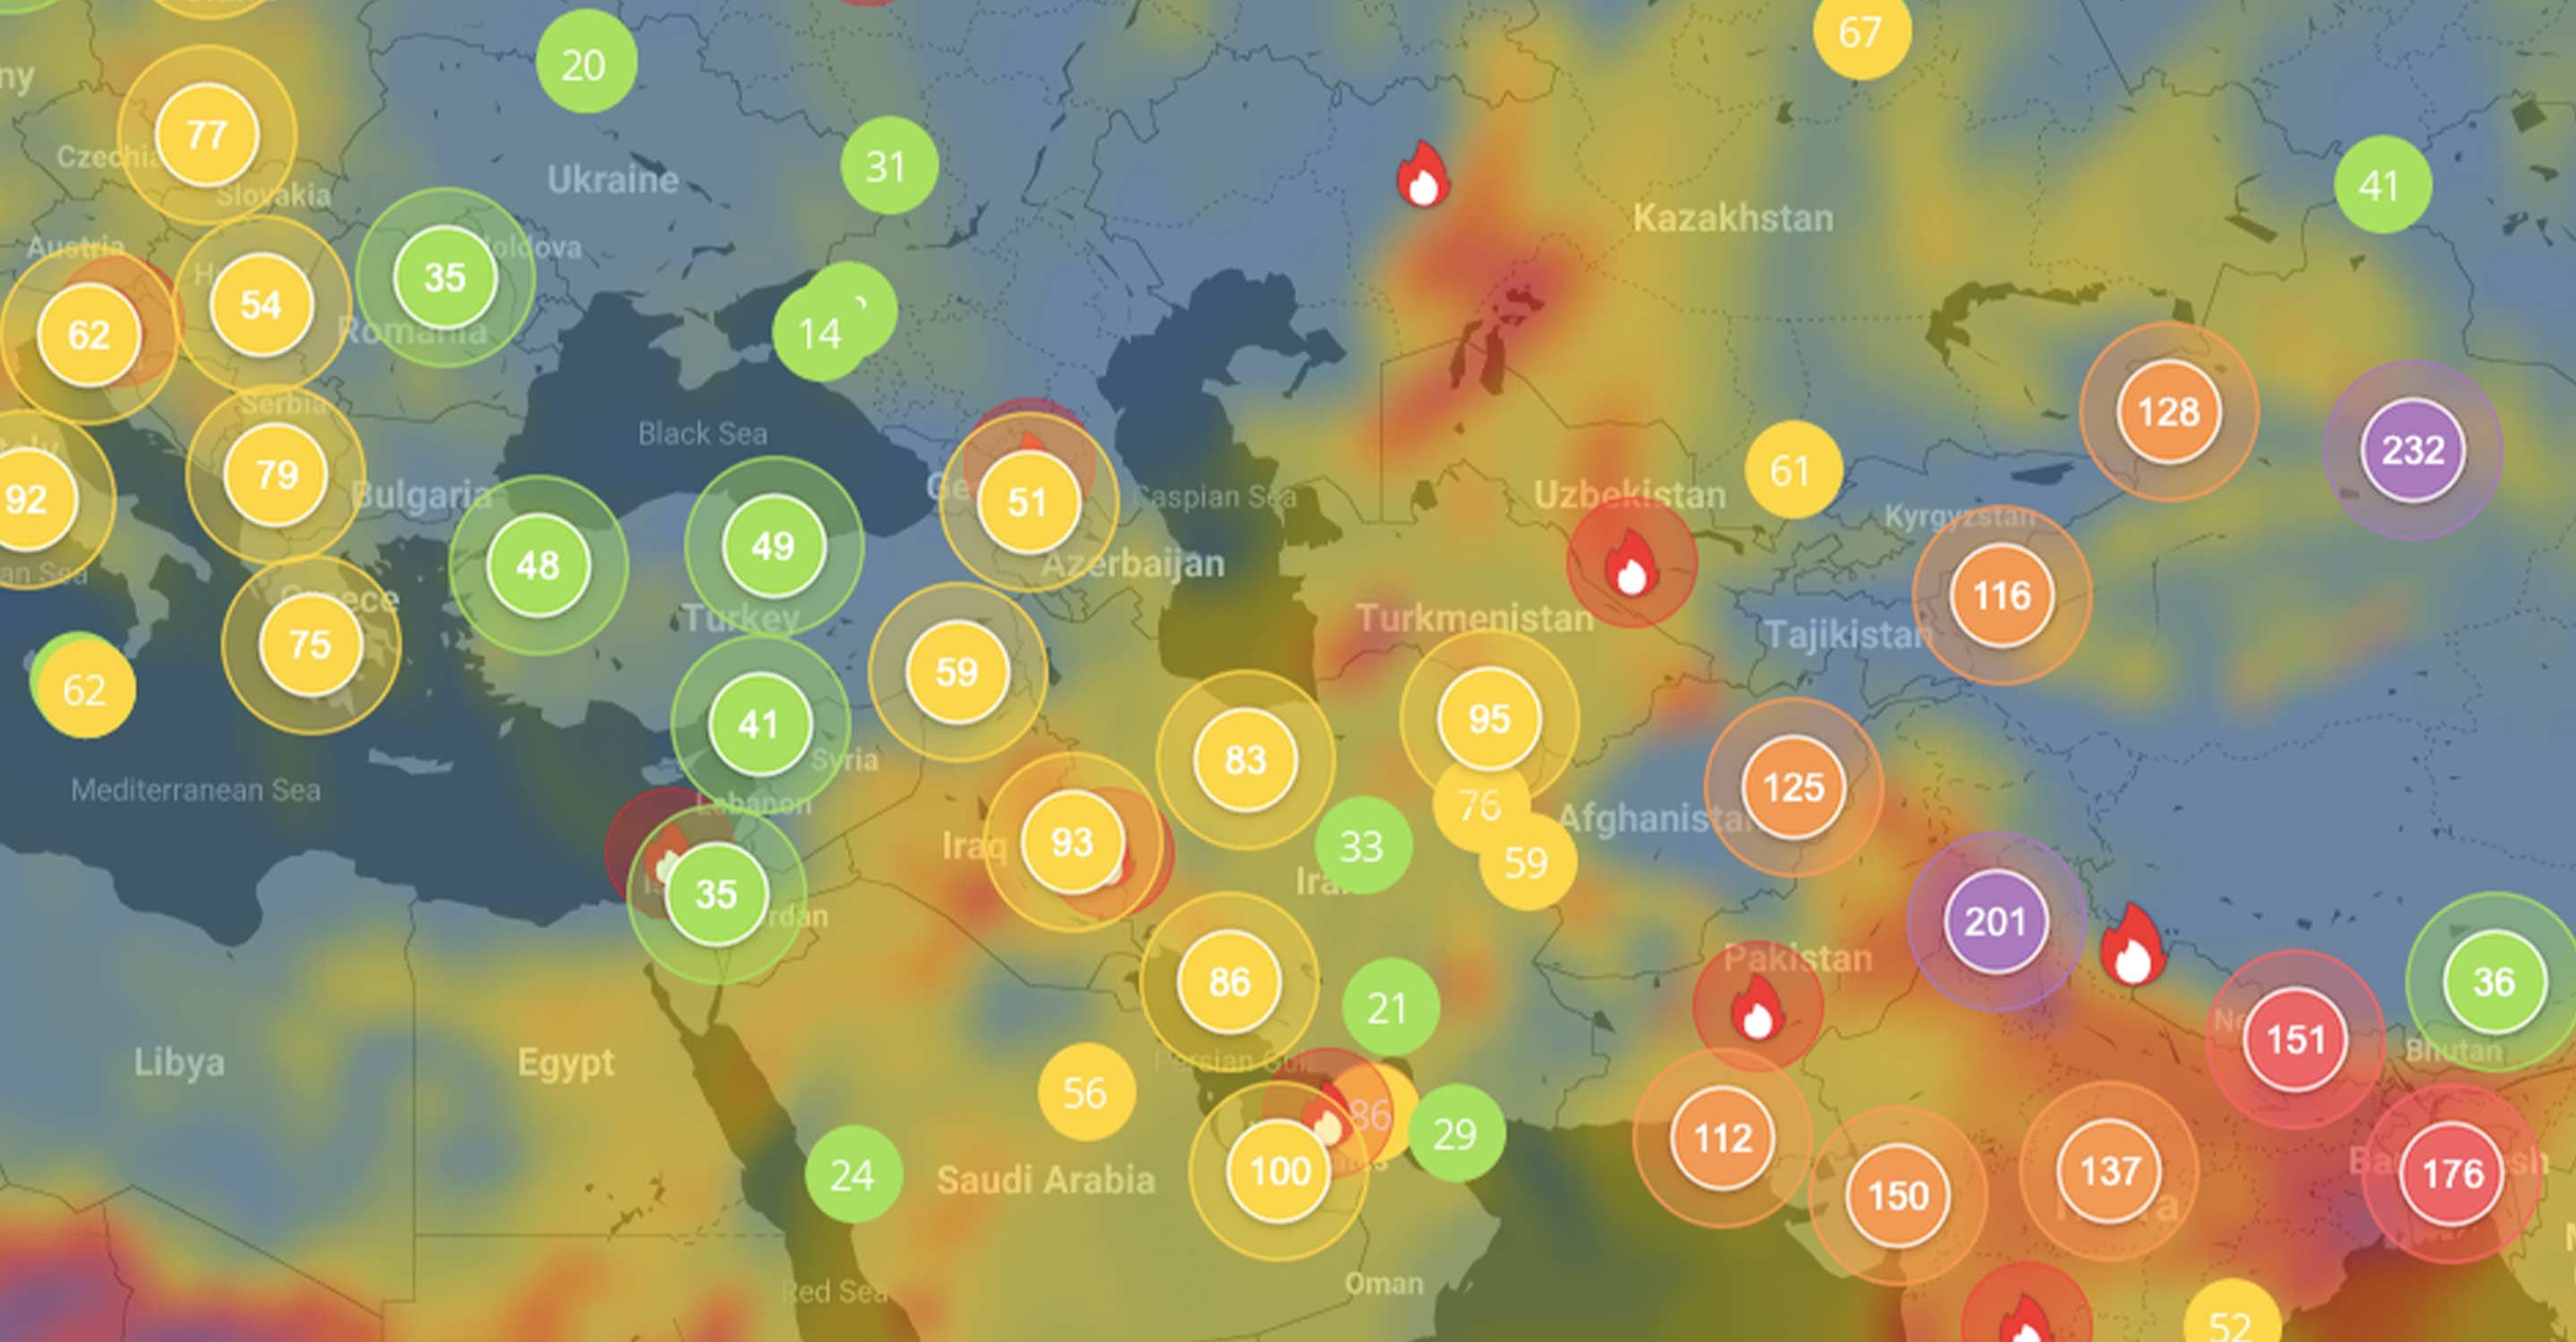 World's largest platform for air quality data launched at tenth World Urban Forum